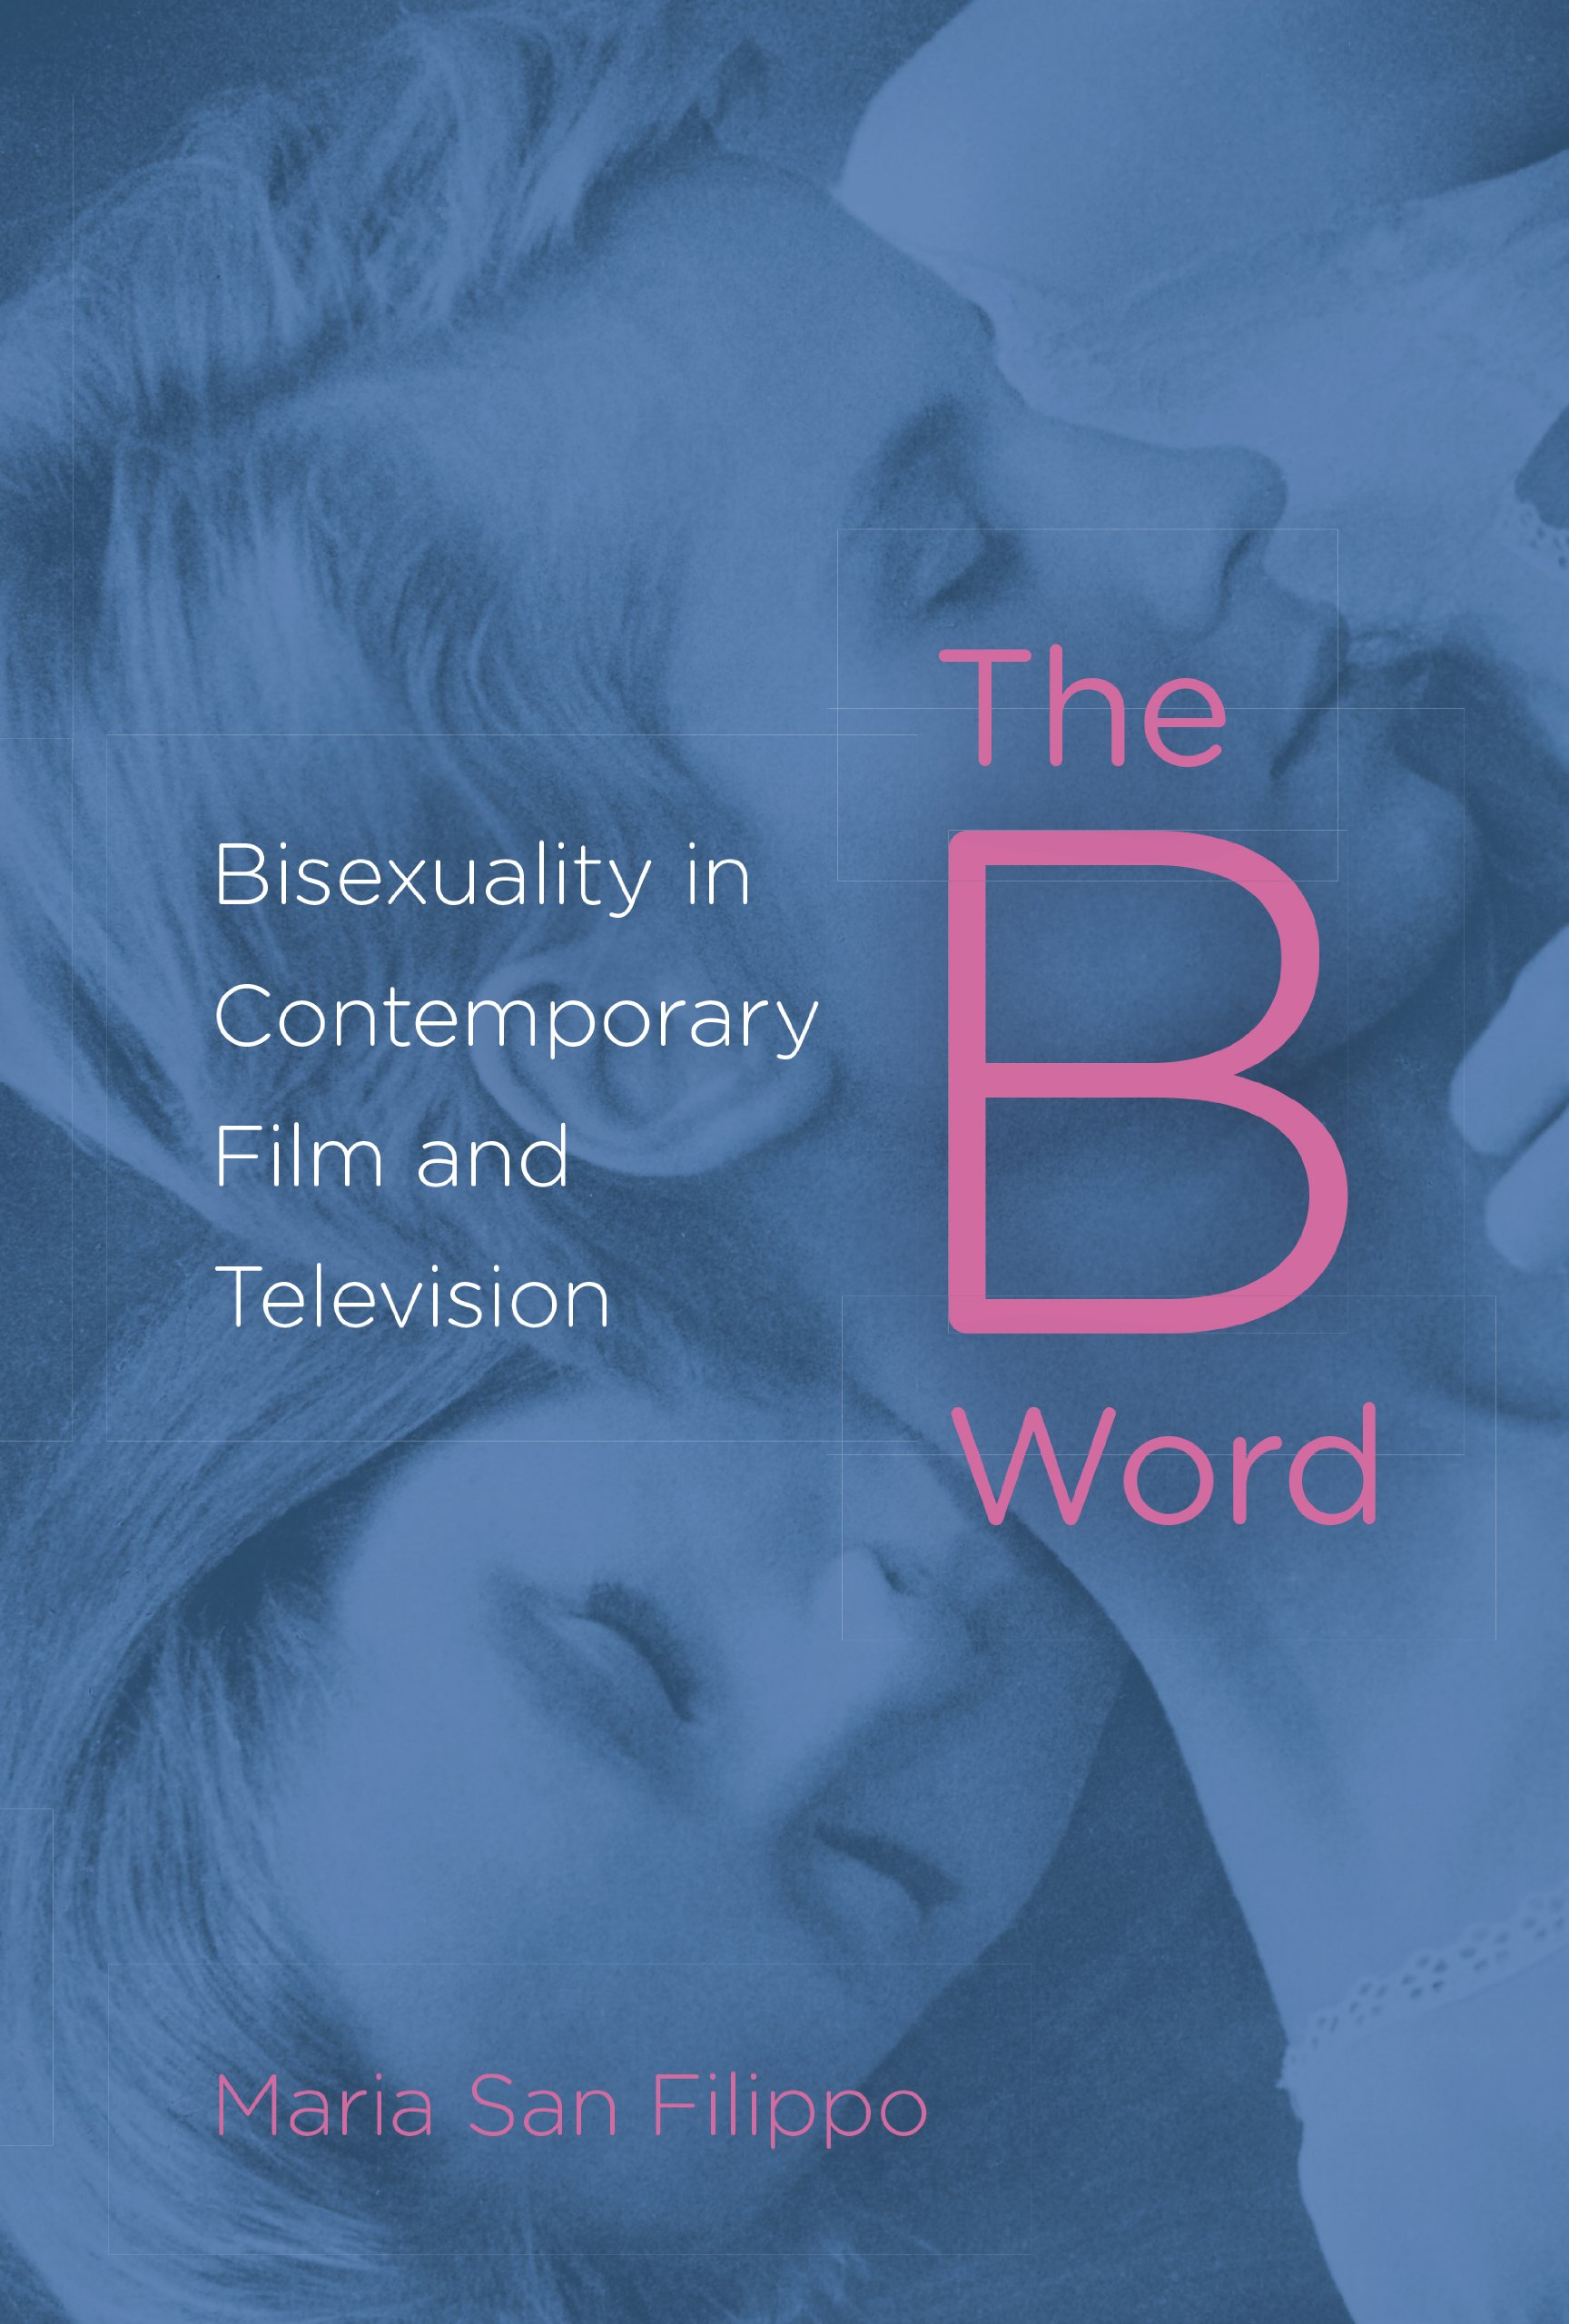 Bisexuality in the media